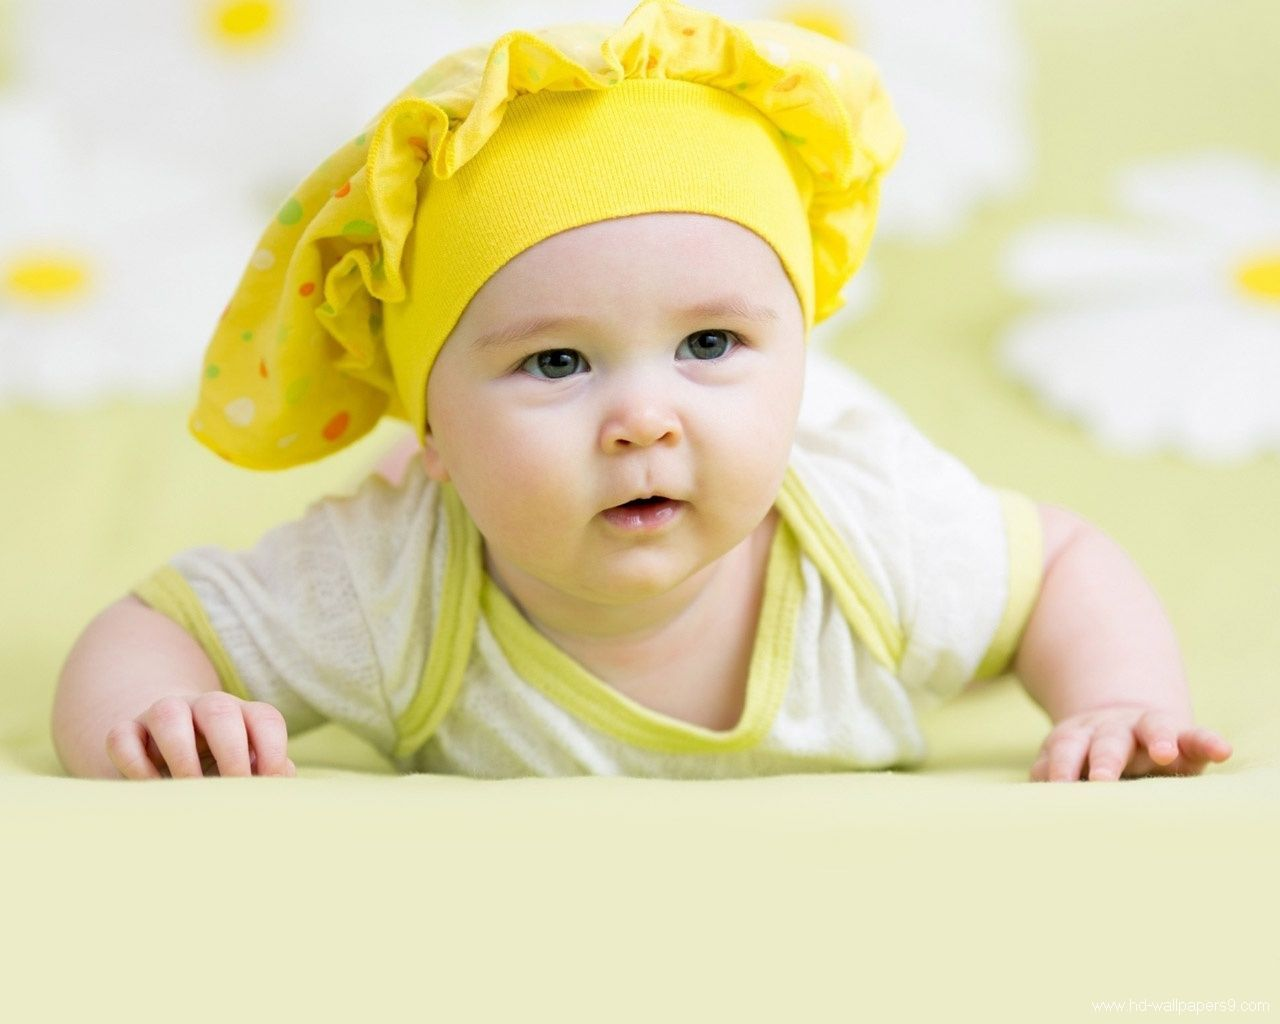 Baby wallpapers in hd group 19201440 baby wallpapers 38 wallpapers baby wallpapers in hd group 19201440 baby wallpapers 38 wallpapers adorable voltagebd Gallery